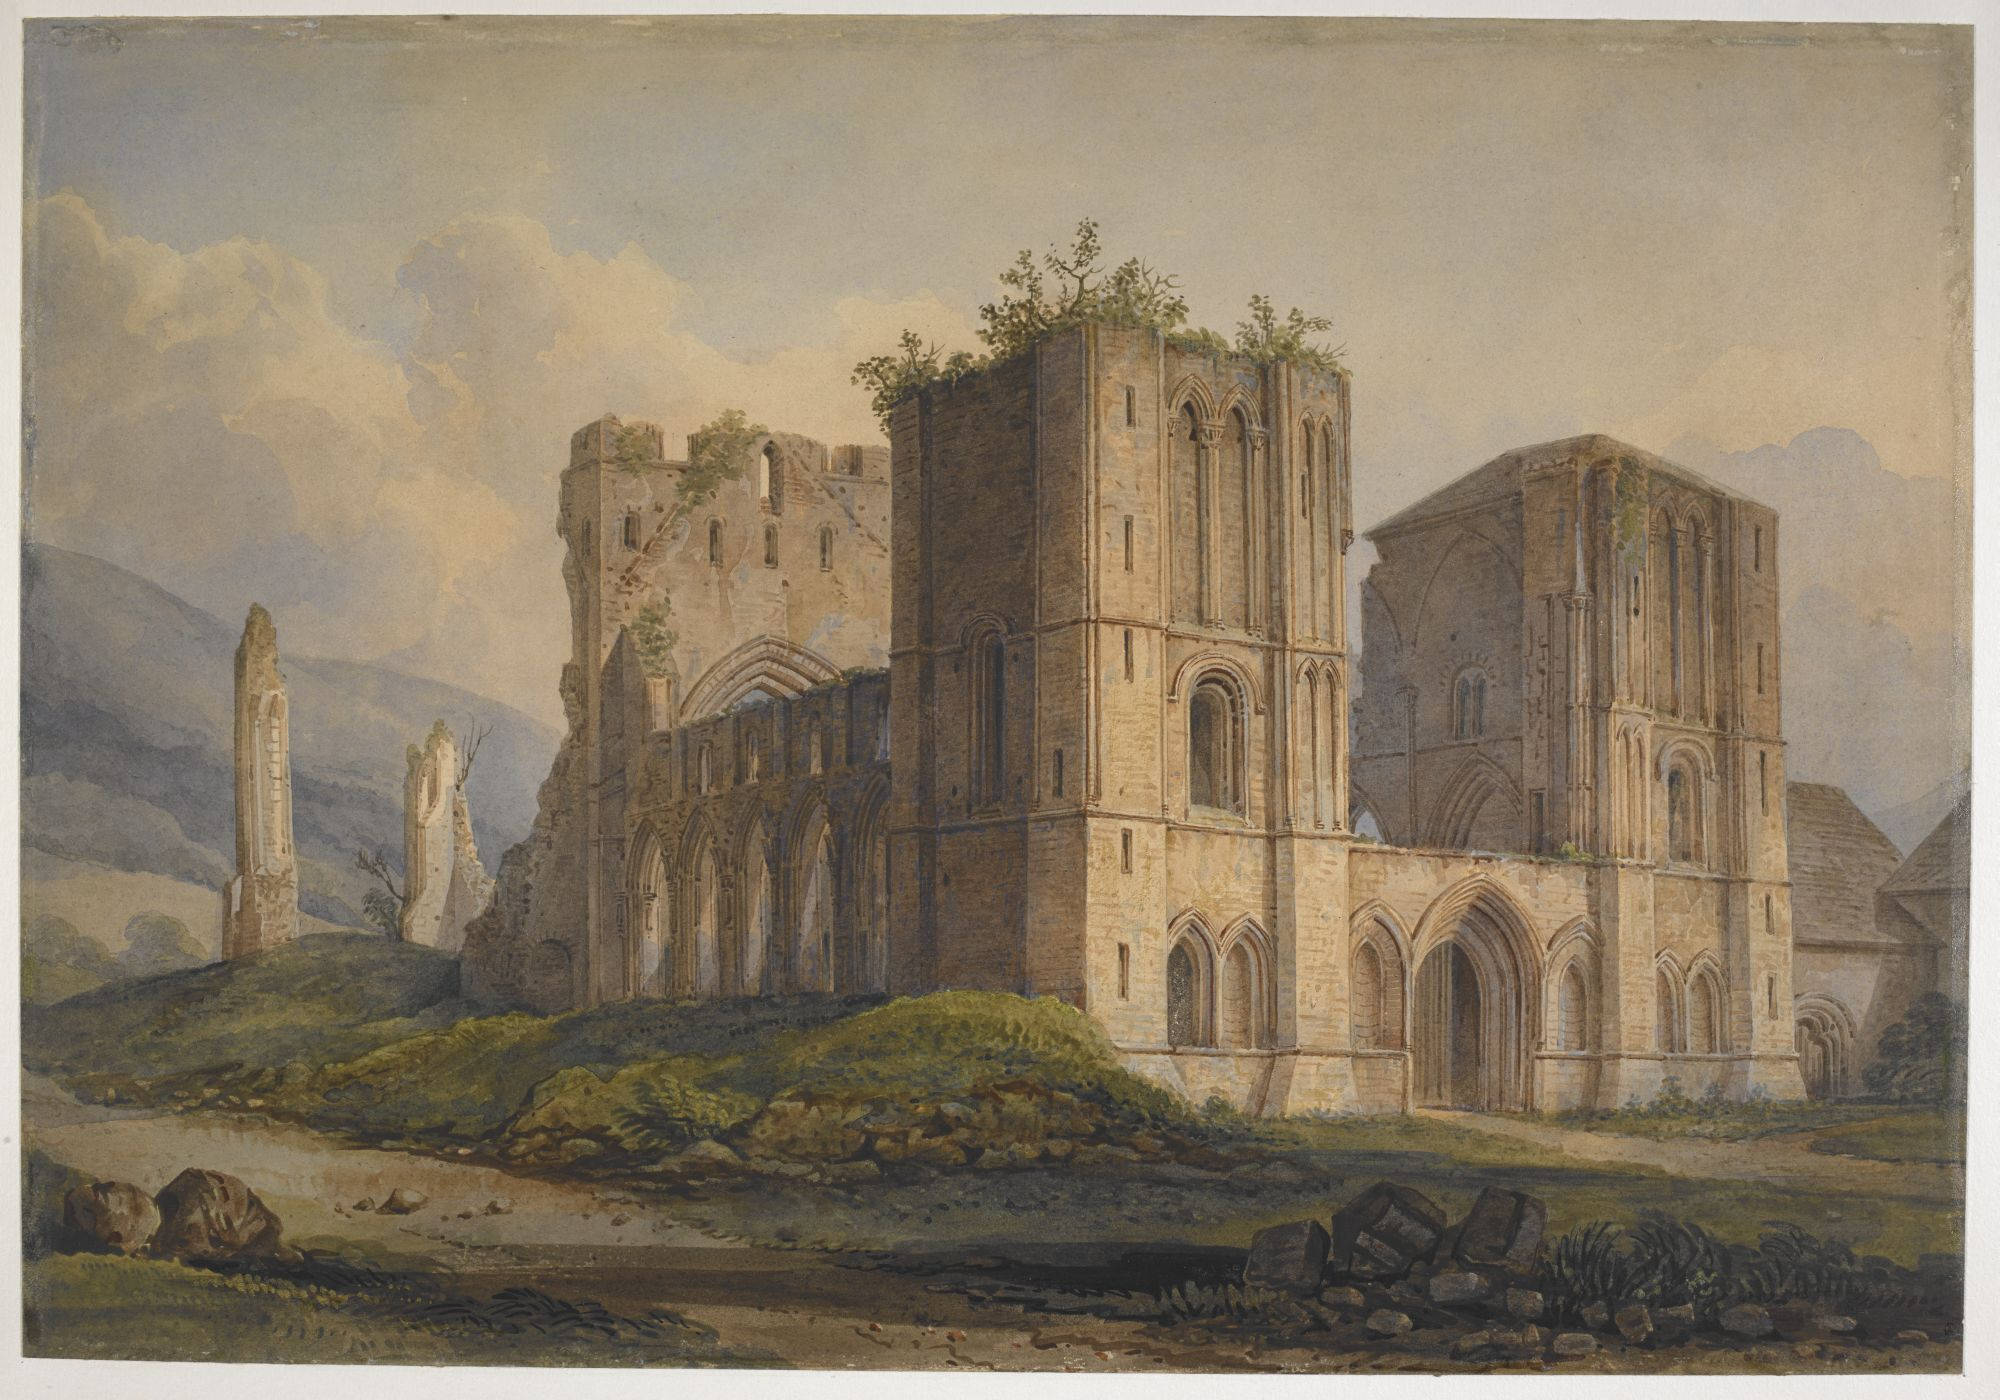 Itinerant View Takers | British Library - Picturing Places